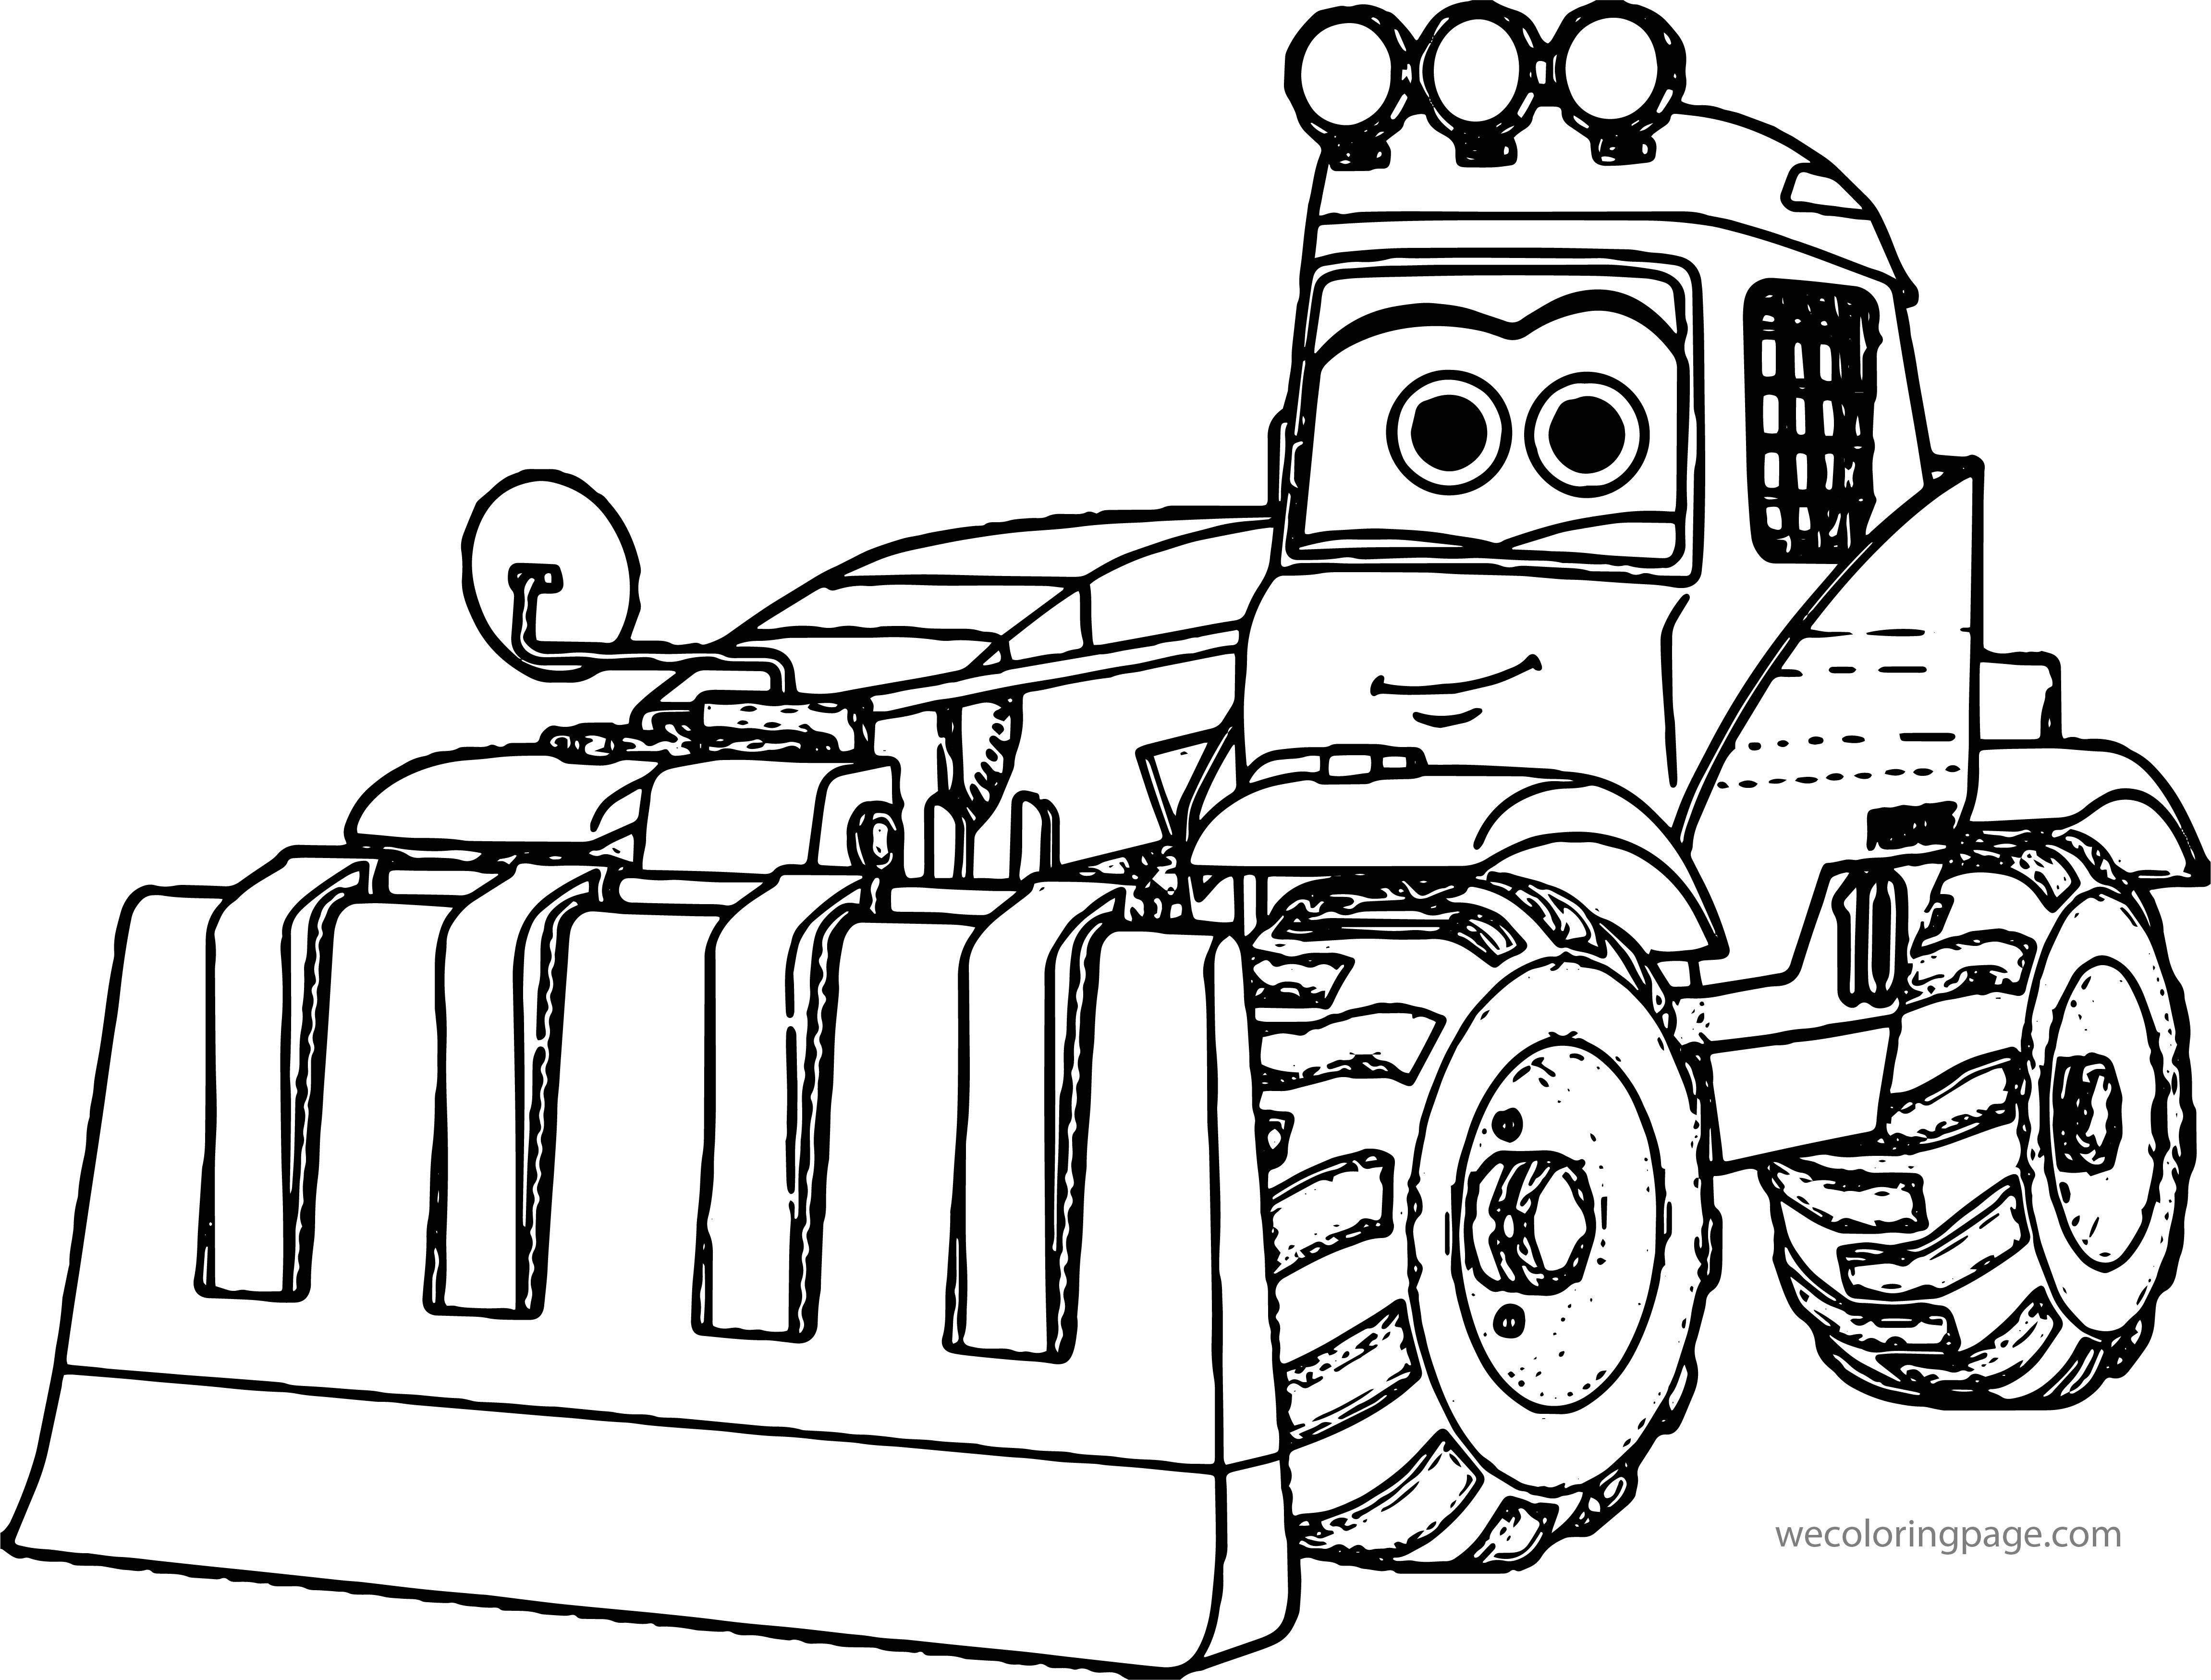 rescue truck coloring pages rescue fire engine coloring page for kids transportation coloring rescue pages truck